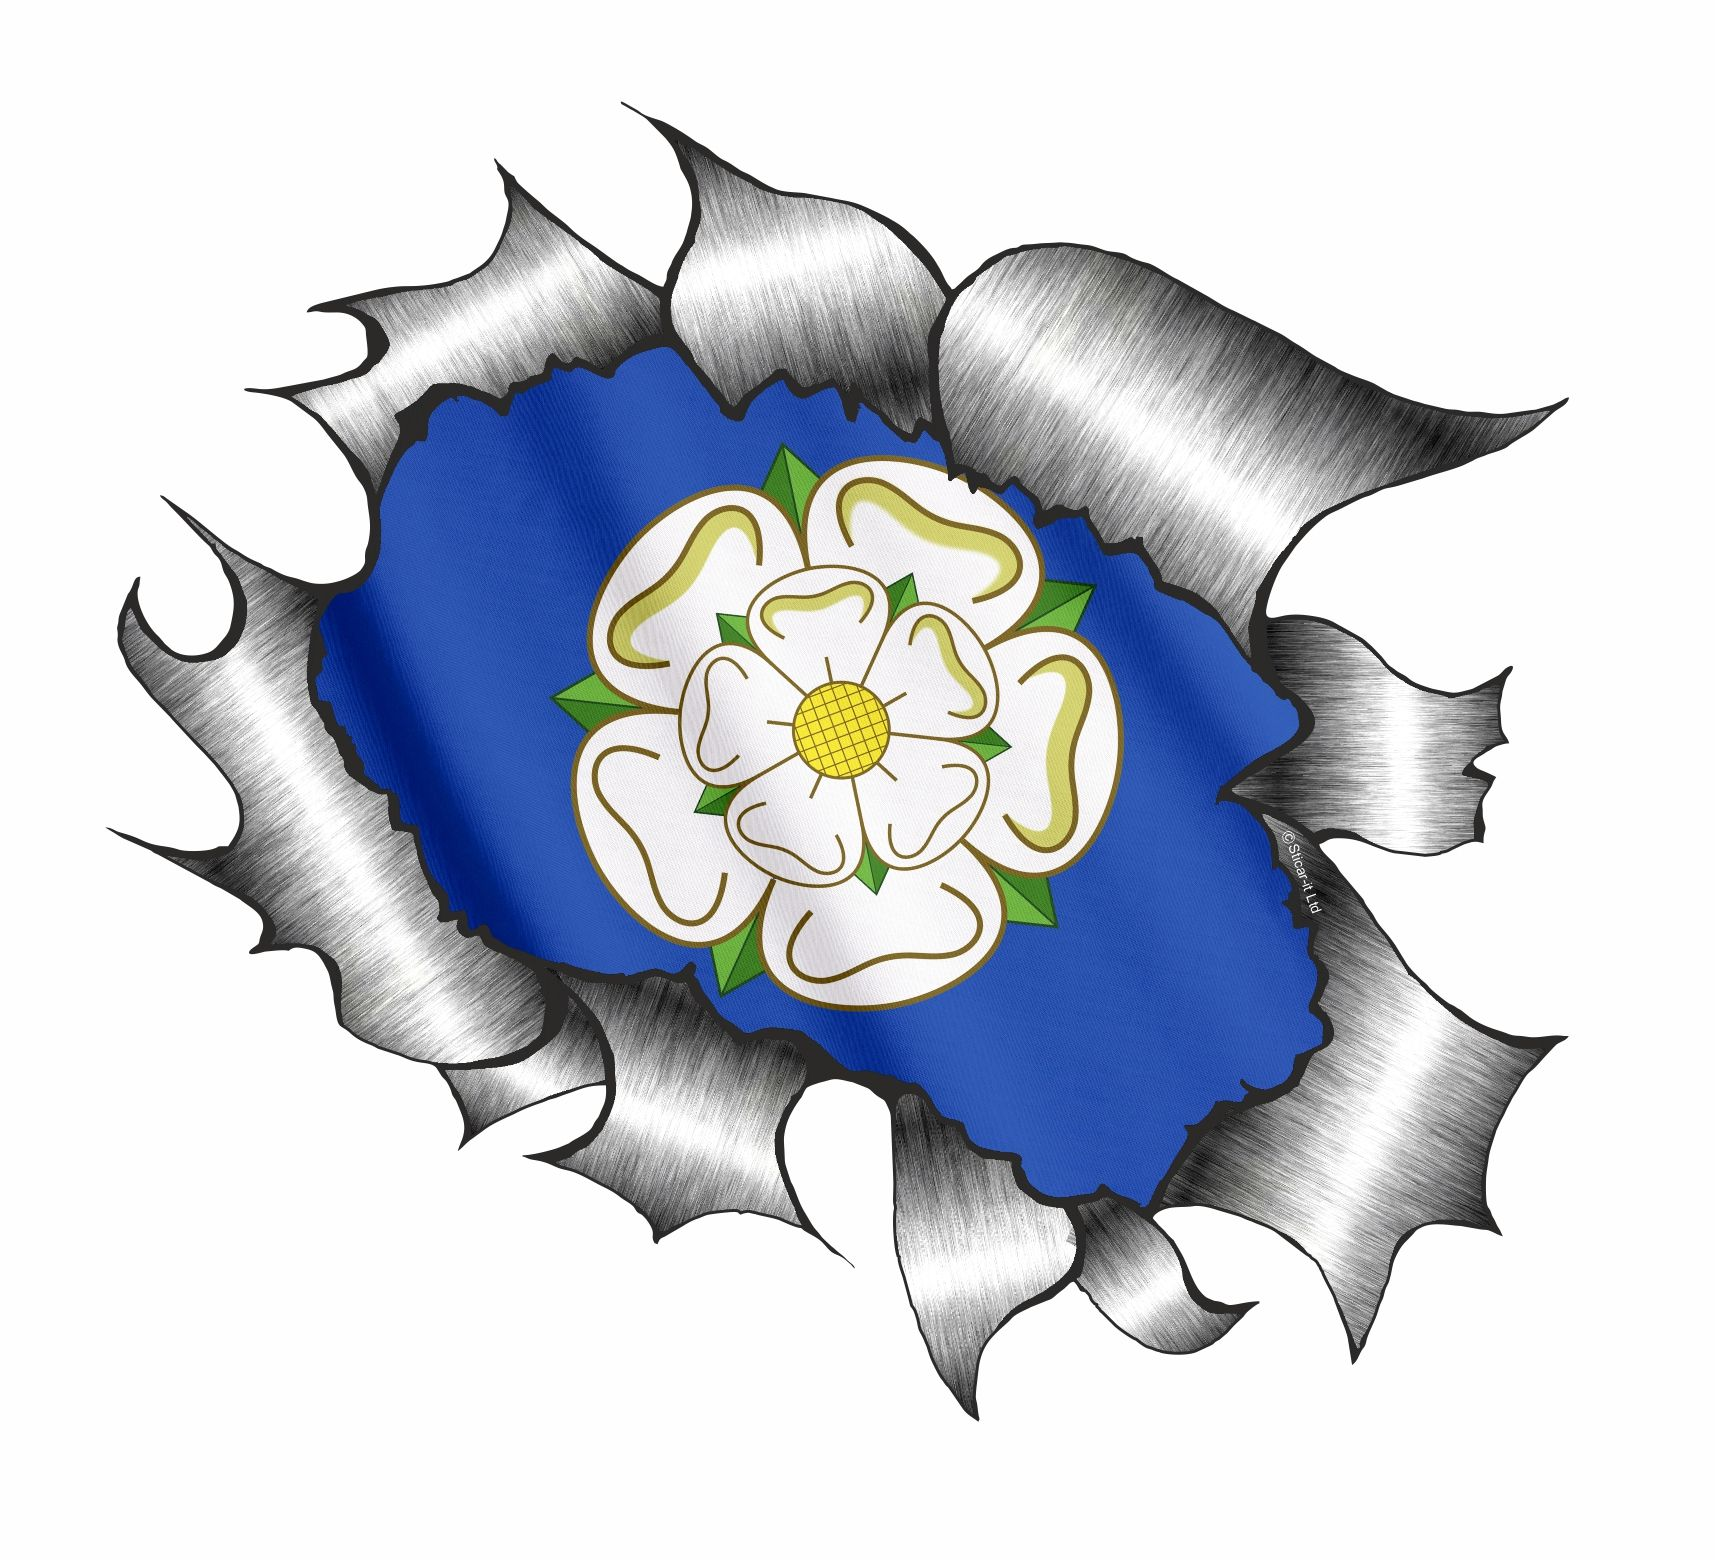 Case Design phone case decals : A4 Size Ripped Torn Metal Design With Yorkshire Rose County Flag Motif ...